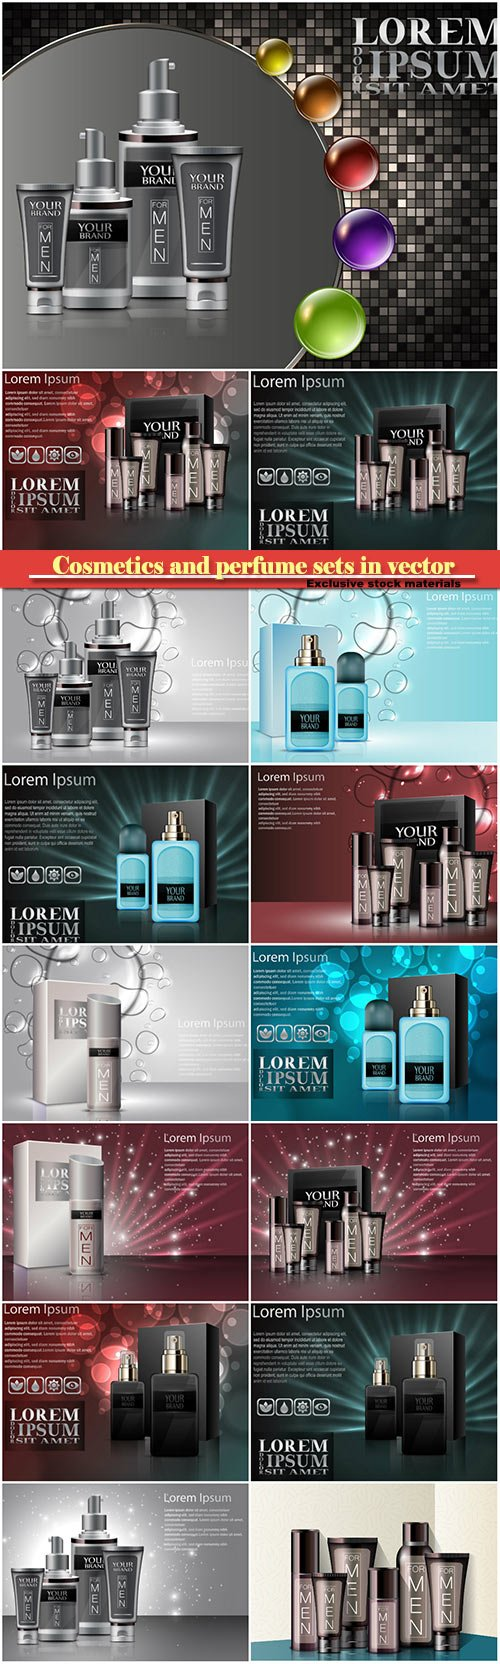 Cosmetics and perfume sets in vector